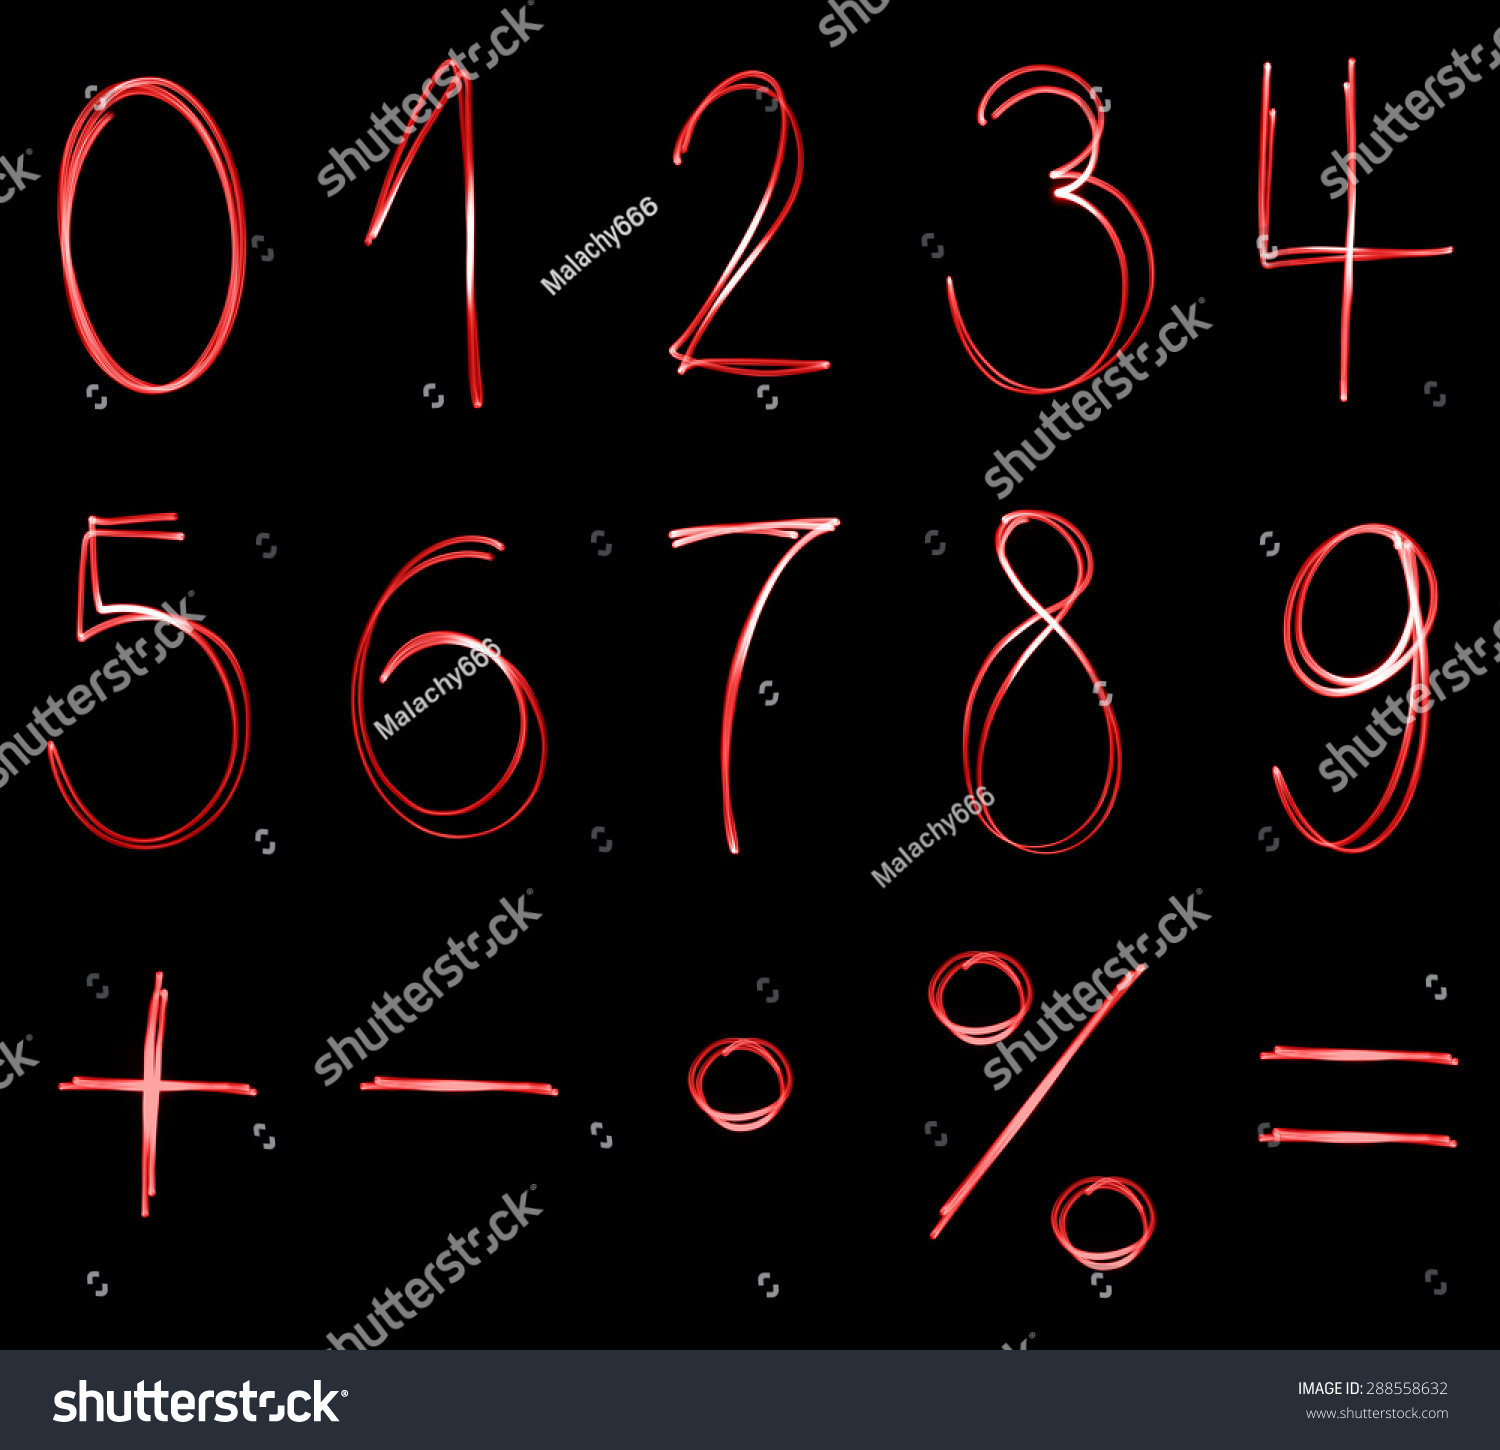 Different flourescent numbers math symbols red stock photo different flourescent numbers and math symbols in red neon color buycottarizona